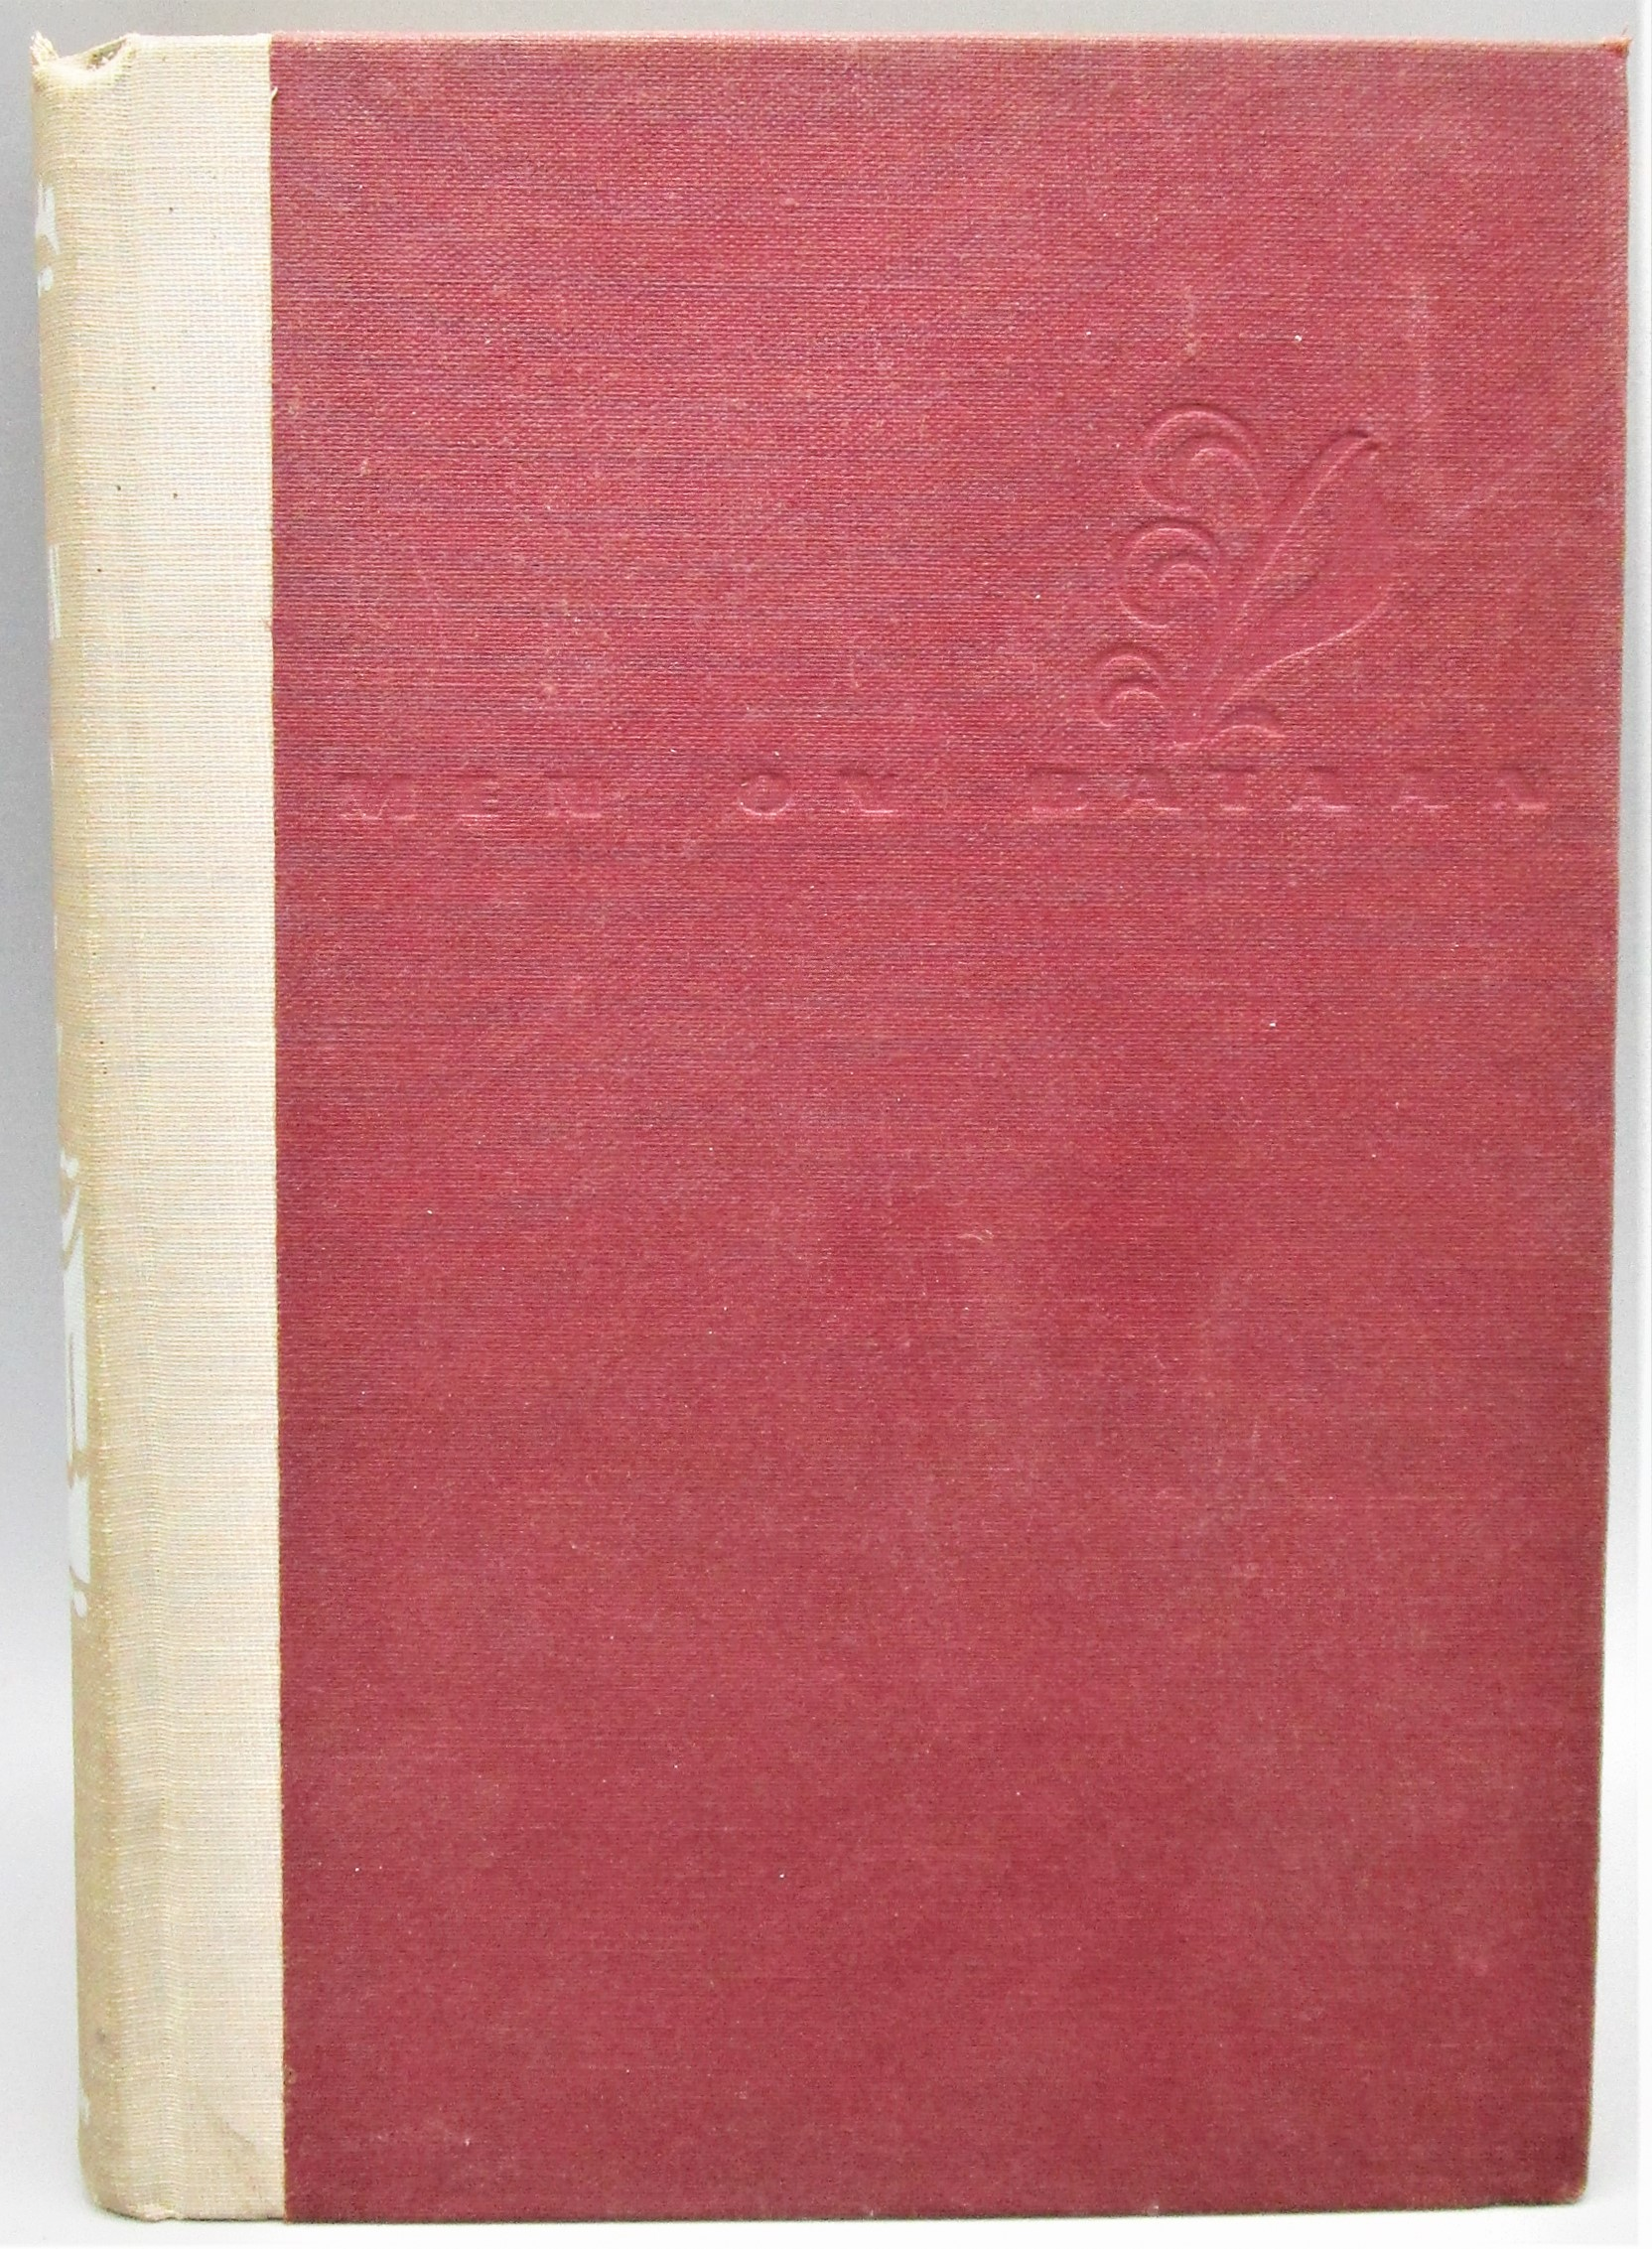 MEN ON BATAAN, by John Hersey - 1942 [1st Ed]